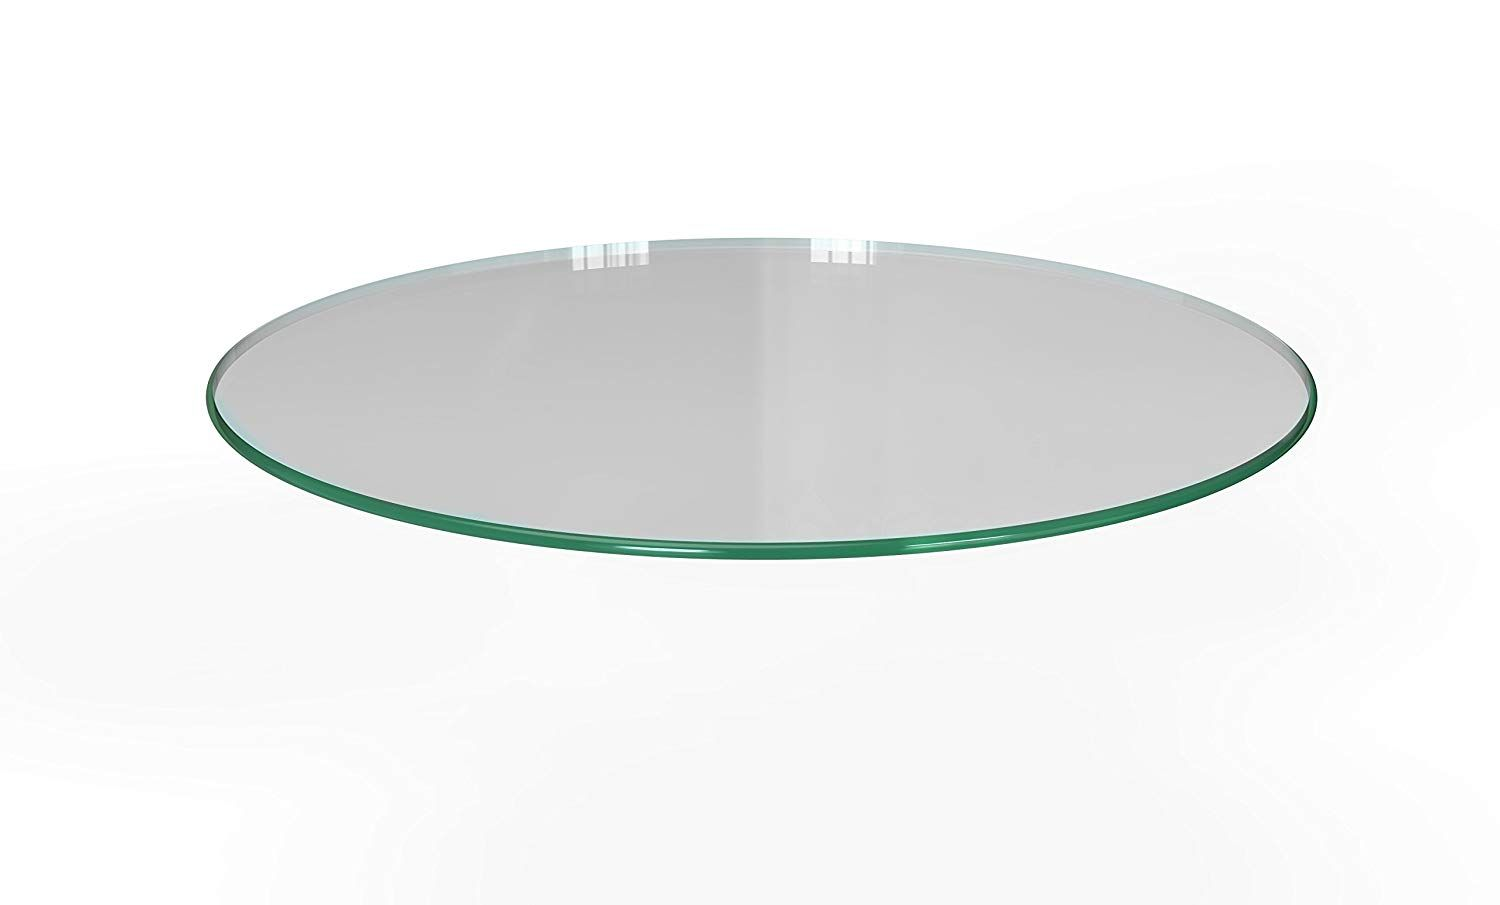 Milan Rd303010pec 30 X 30 Round Tempered Glass Table Top With Pencil Polish Edge Tempered Glass Table Top Glass Top Luxury Dining Tables 30 round glass table top